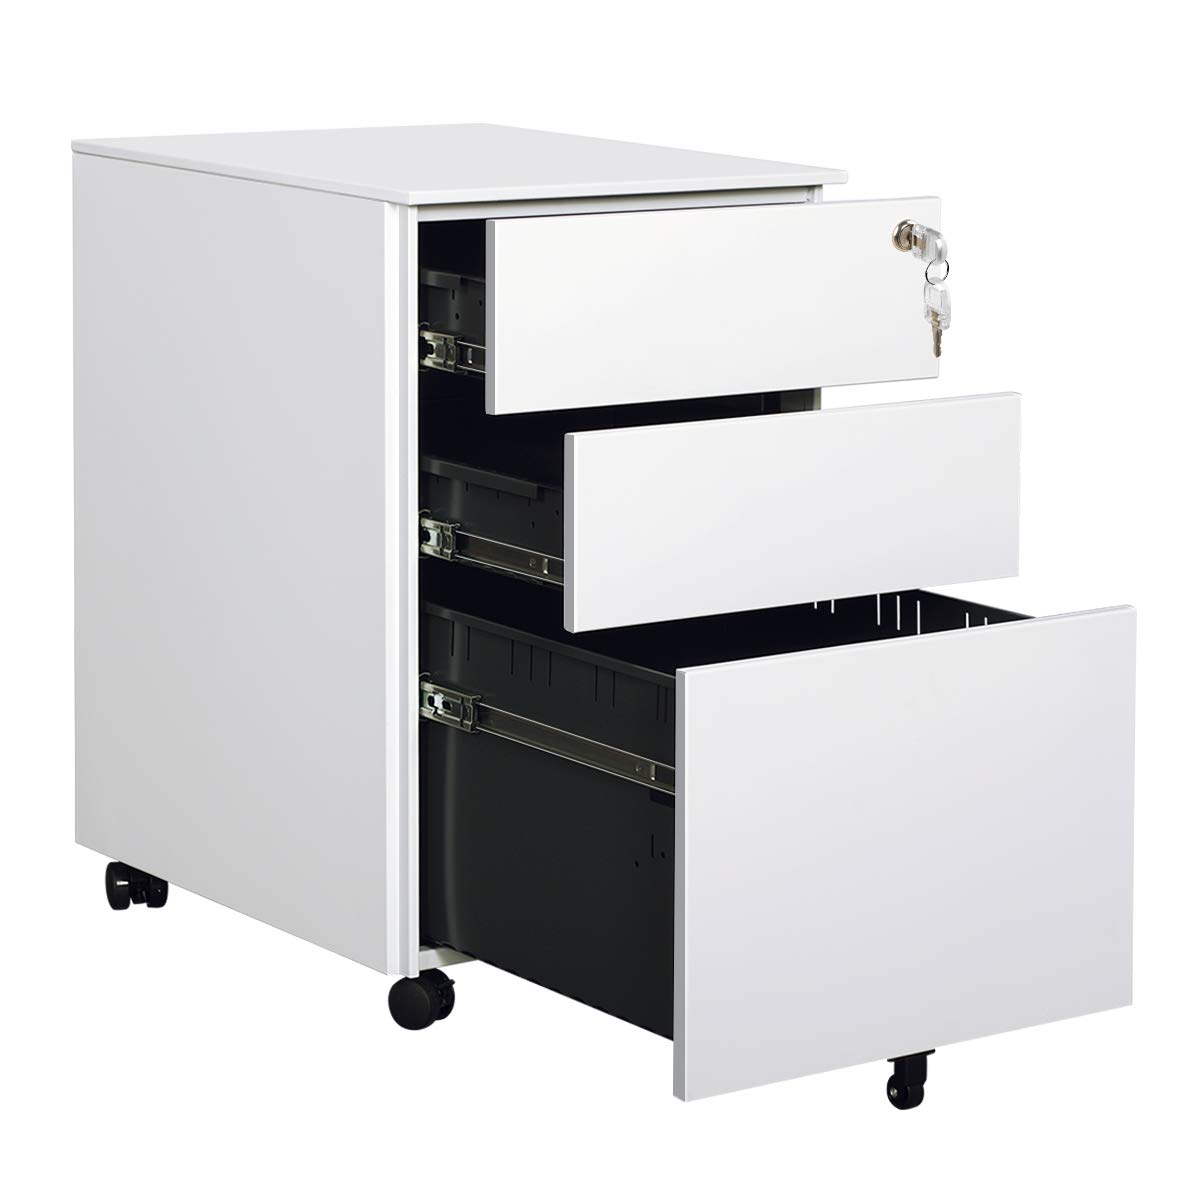 DEVAISE Mobile File Cabinet with 3 Drawer - Metal Filing Cabinet with Lock, White